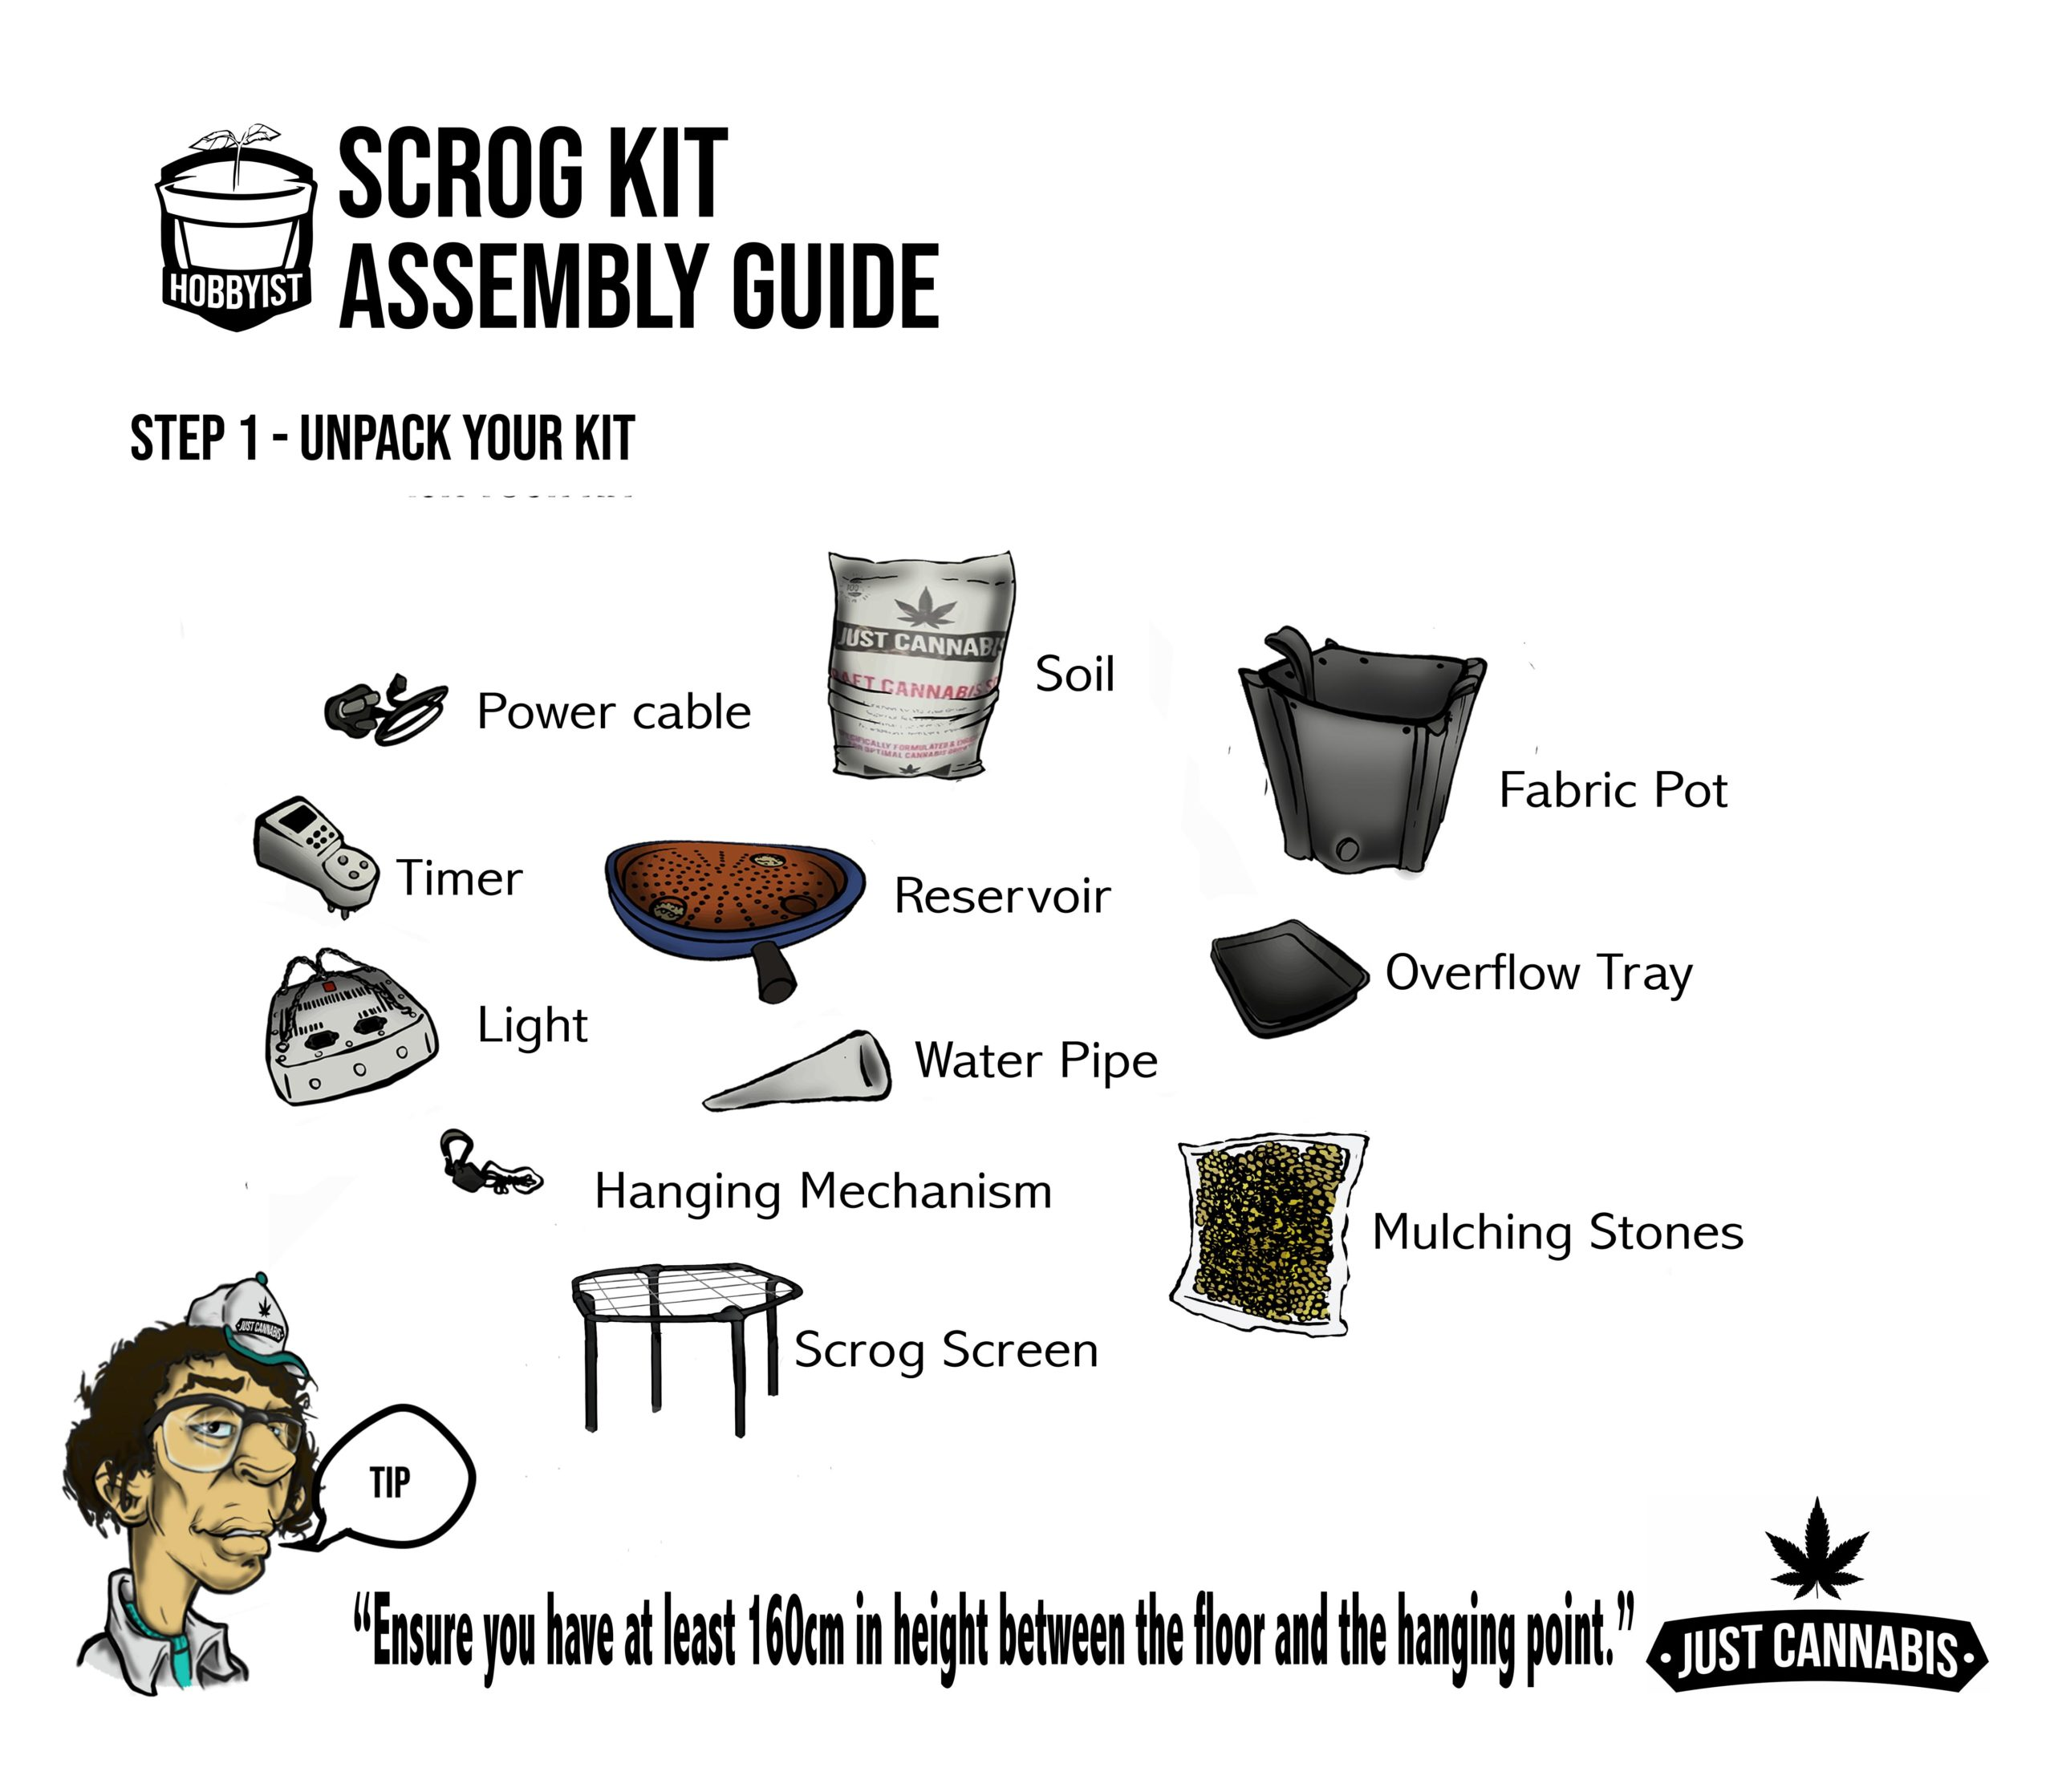 sk assembly guide1